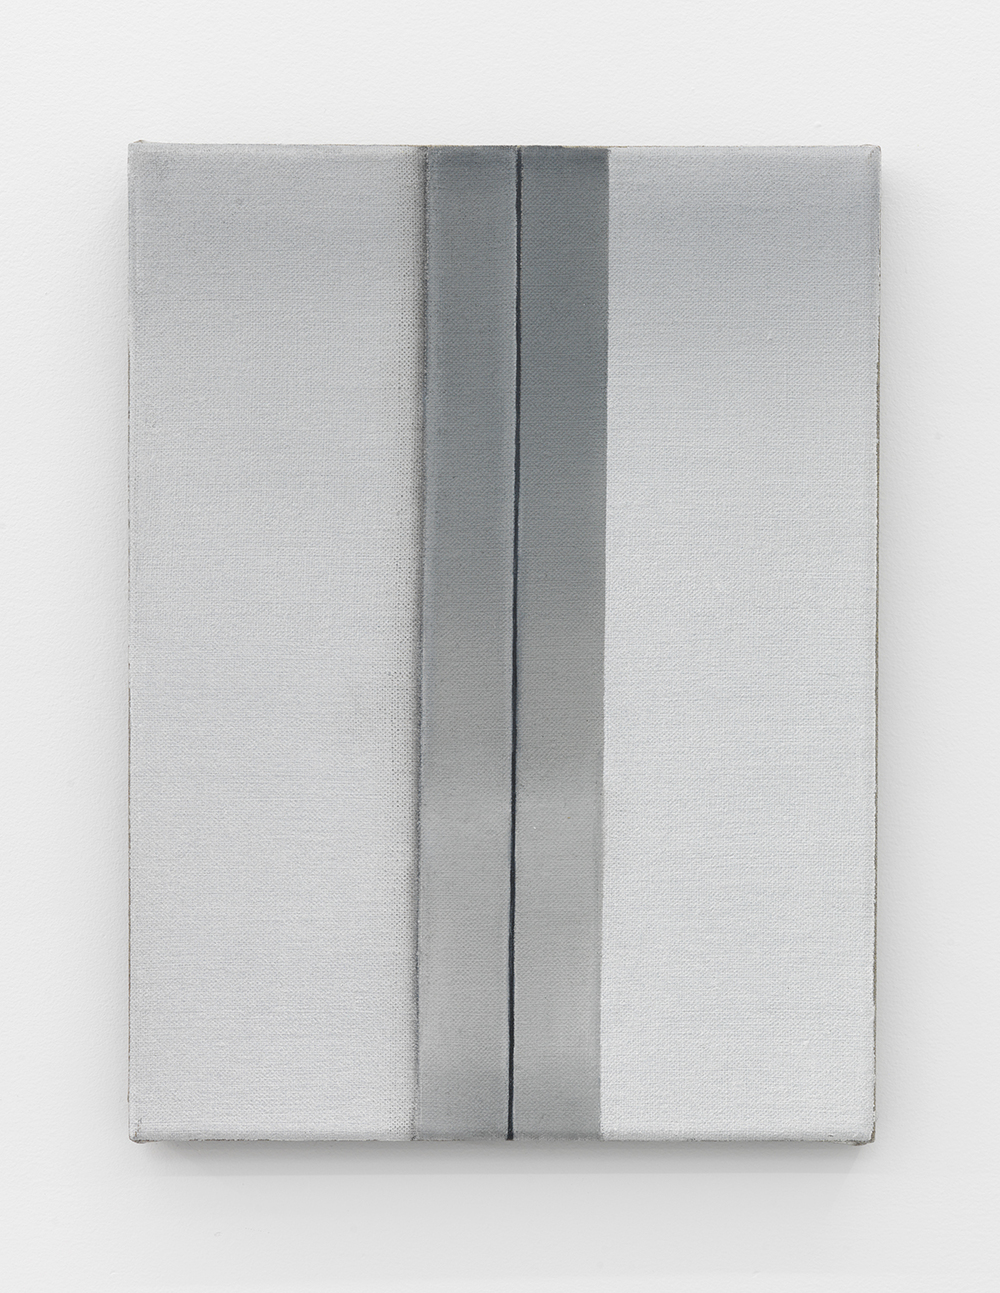 Dana Powell  Untitled (lift) , 2015 Oil on linen 12 x 9 inches